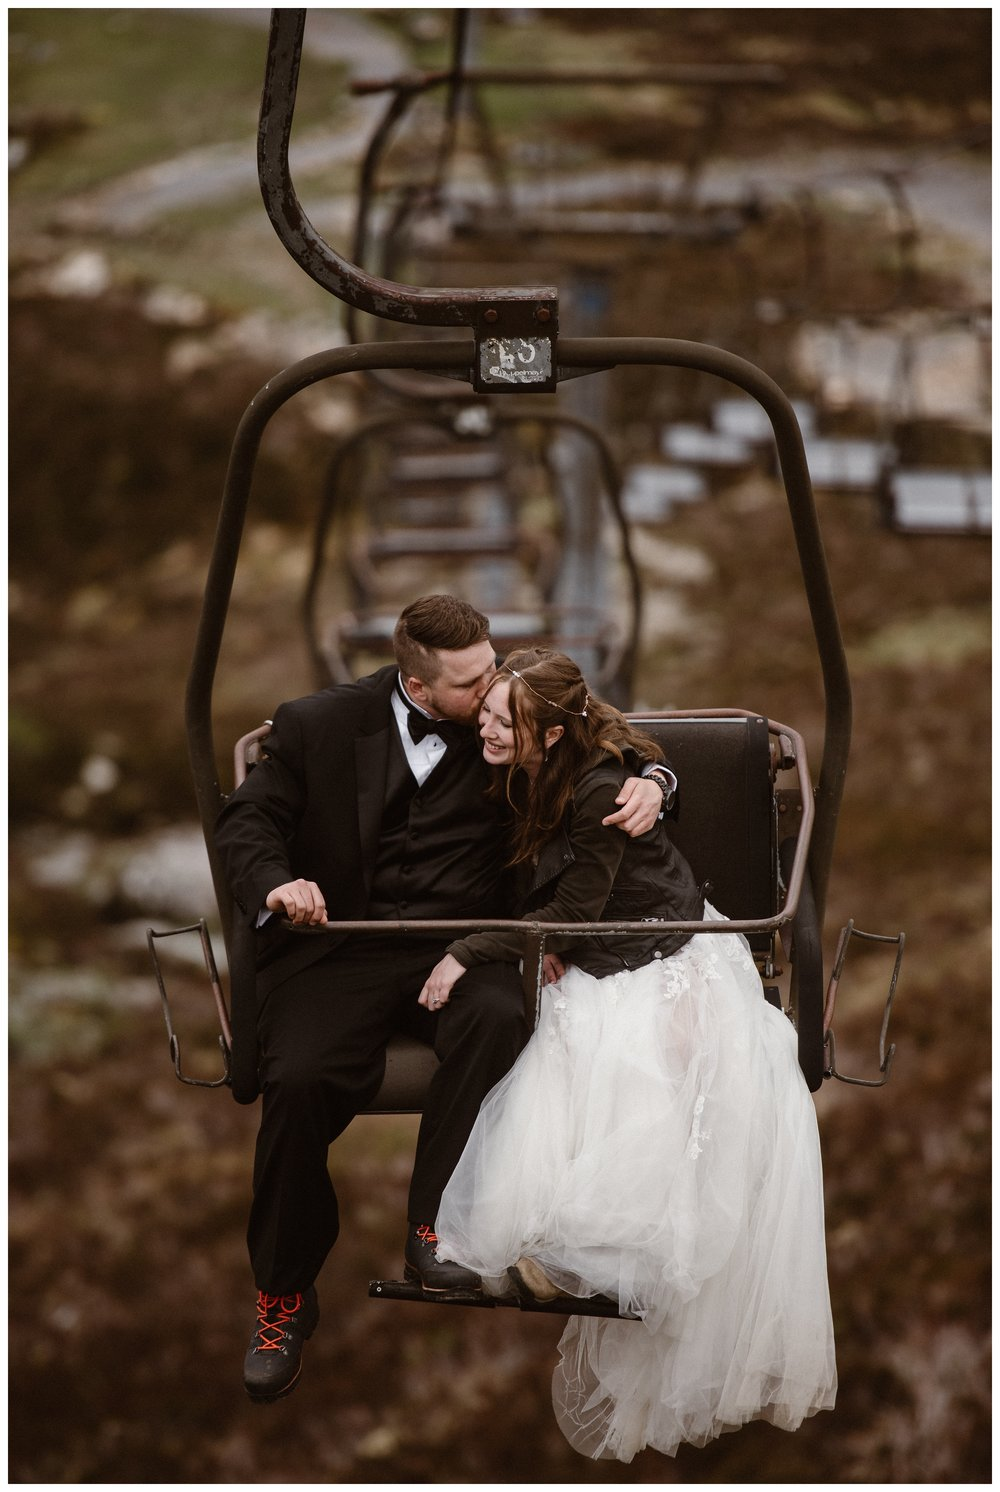 Elissa and Daniel ride a gondola up a mountain dressed in their wedding clothes ahead of exchanging vows during their destination elopement. Photo by Maddie Mae, Adventure Instead.